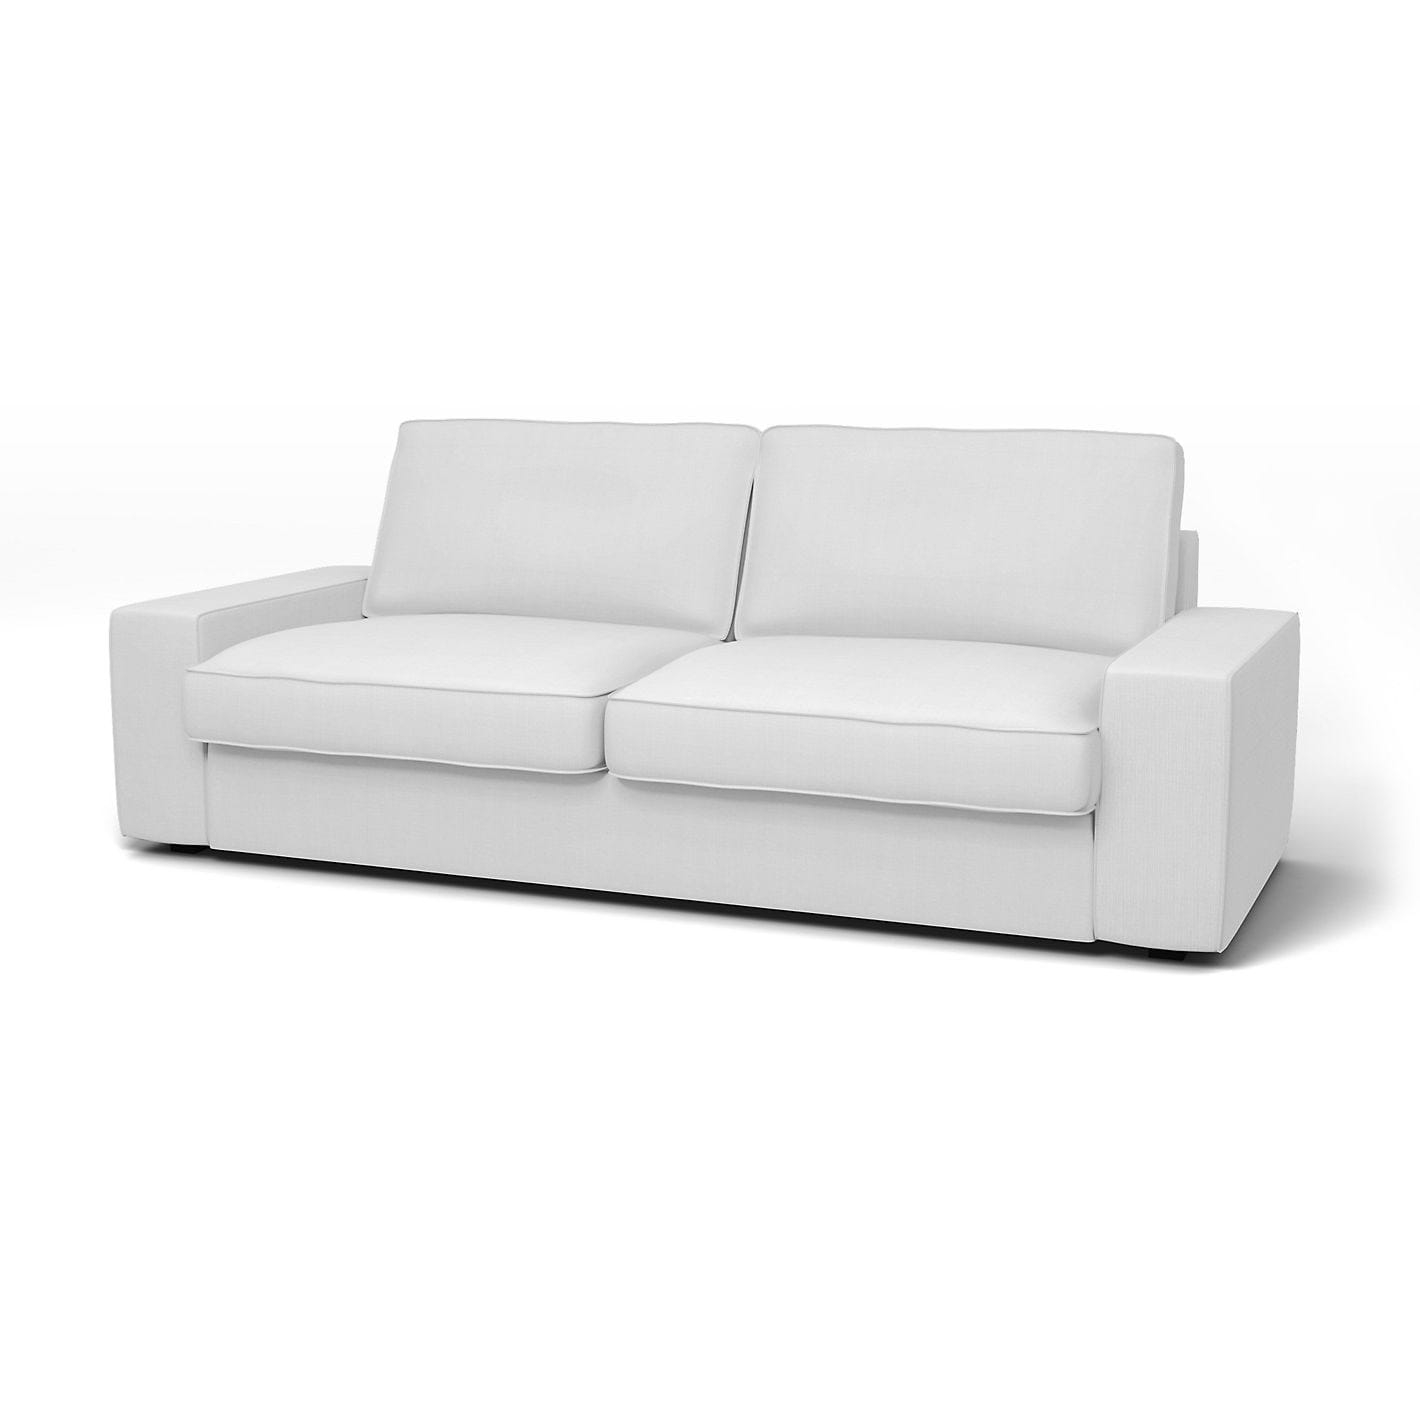 Sofa Covers For Ikea Kivik Couches